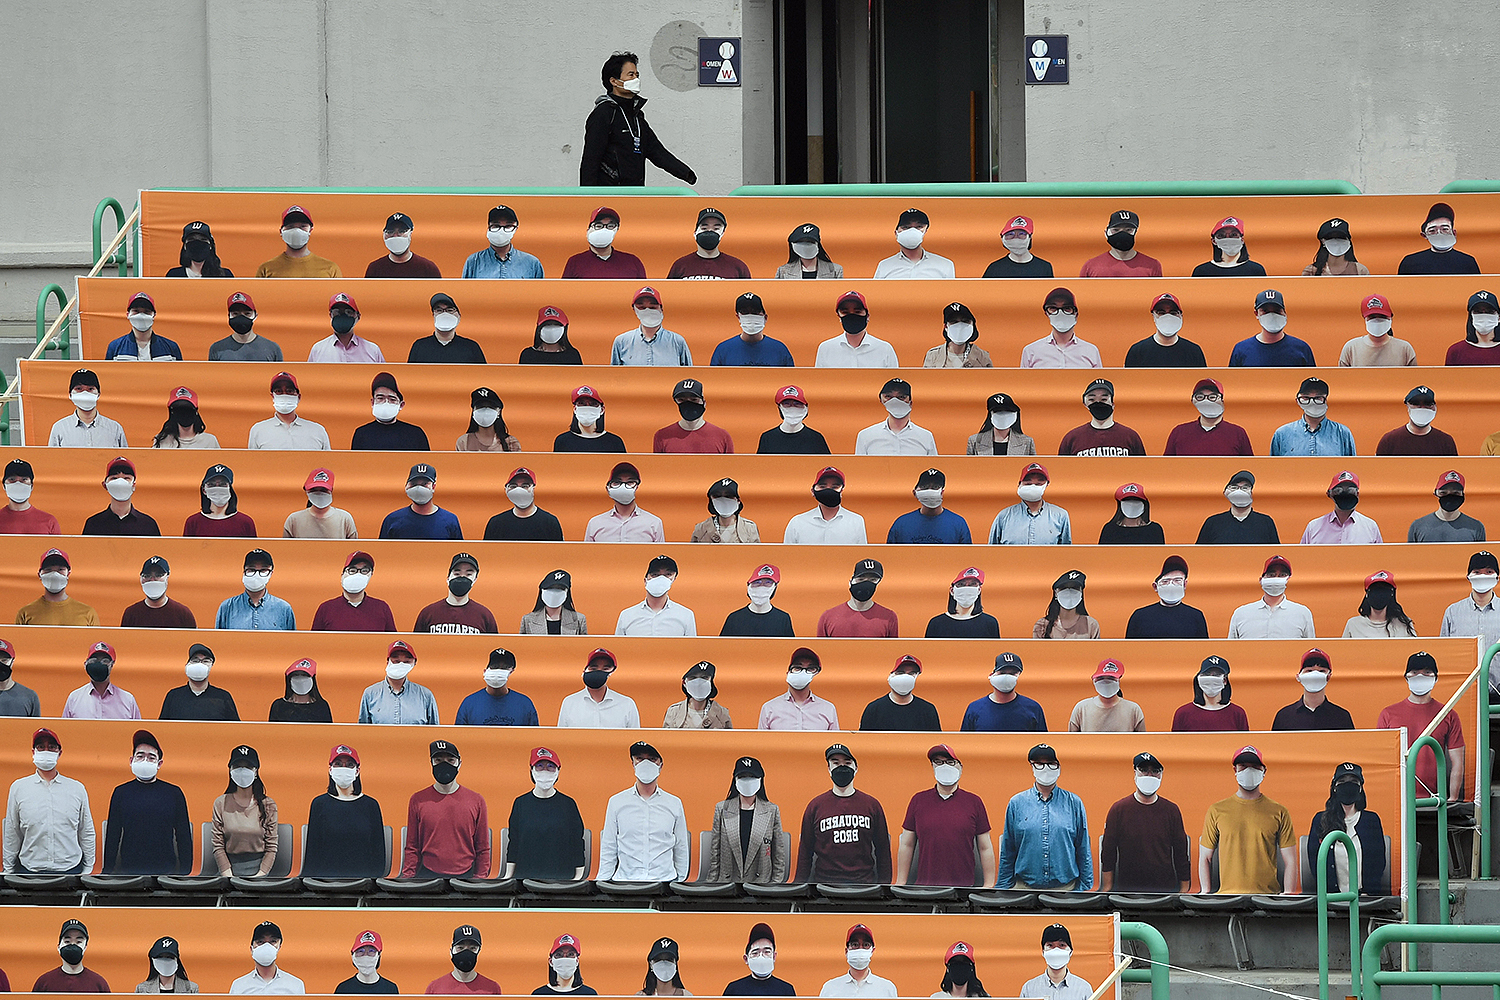 A man walks past banners depicting spectators in the stands prior to South Korea's new baseball season opening game in Incheon on May 5. JUNG YEON-JE/AFP via Getty Images